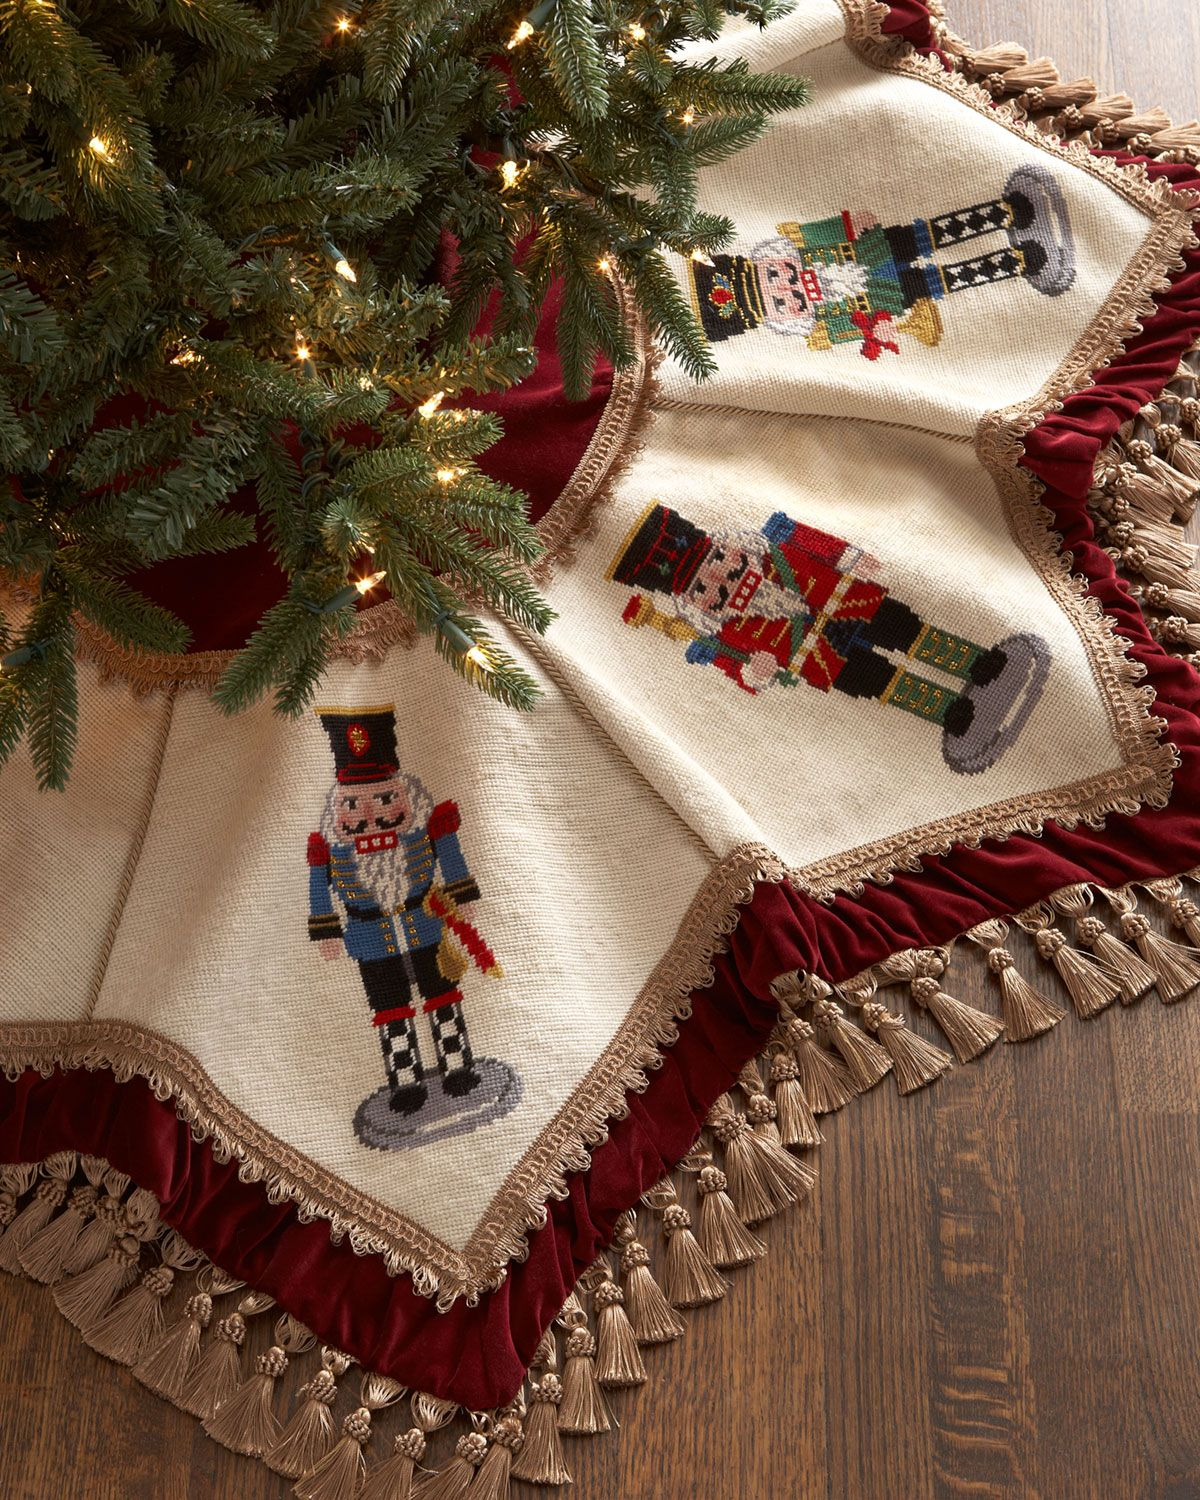 Peking Handicraft Nutcrackers Tasseled Christmas Tree Skirt Nutcracker Christmas Tree Christmas Tree Skirt Nutcracker Christmas